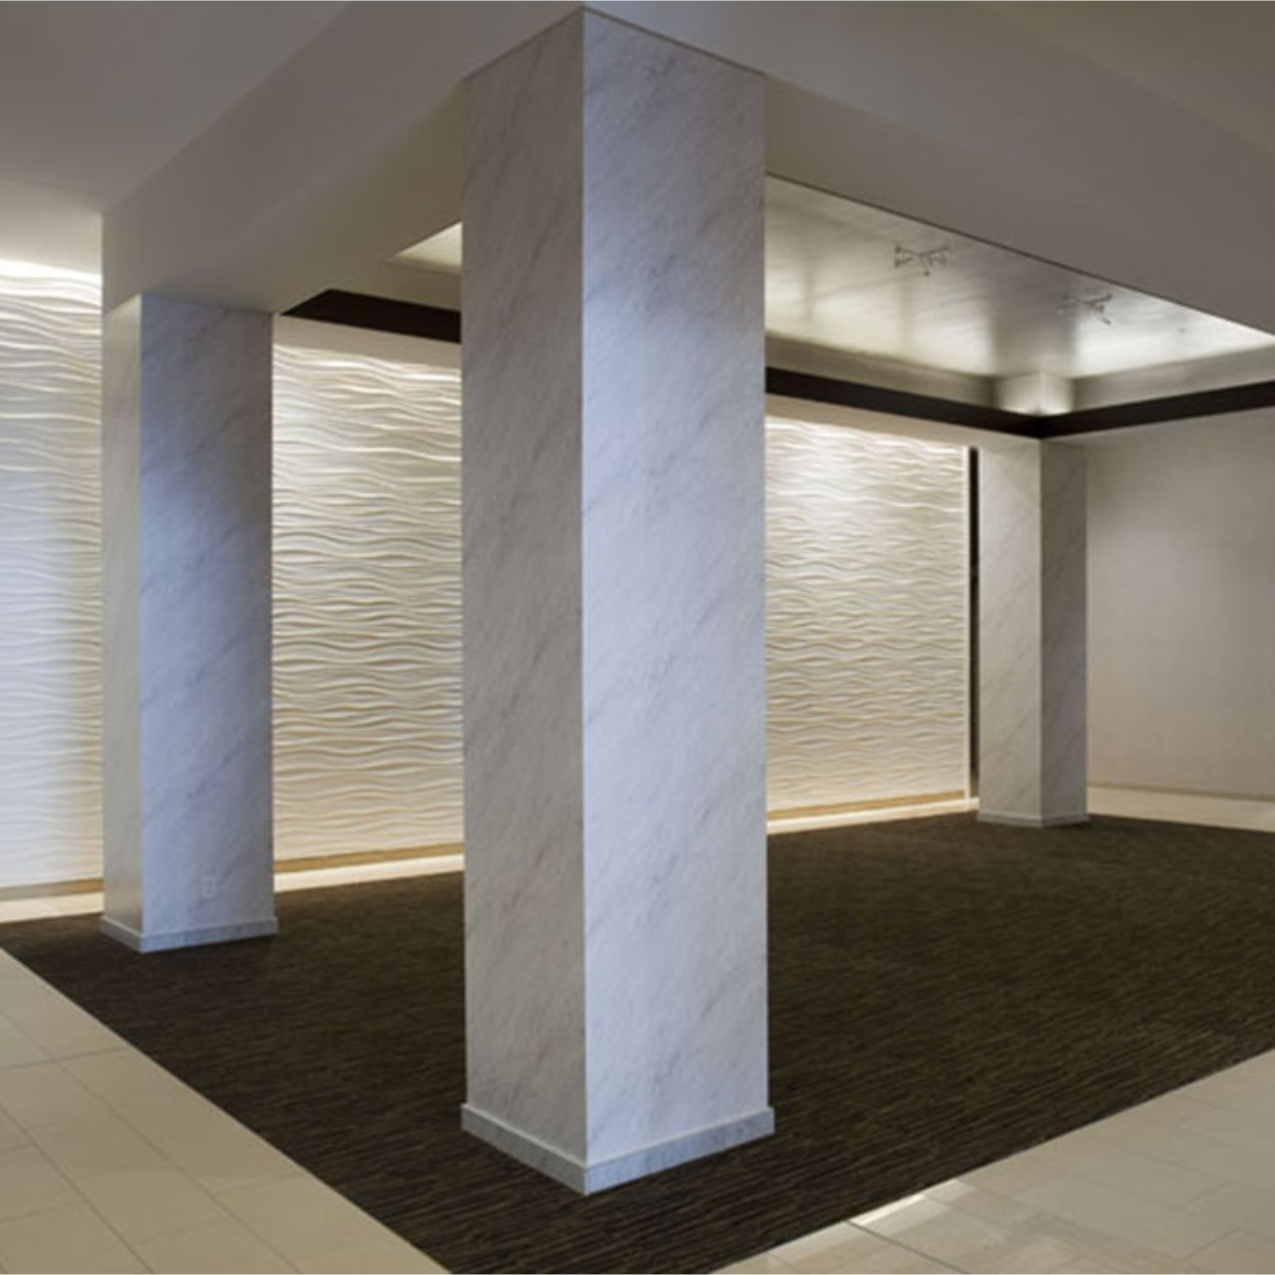 Columns Resurfaced with Marble Vinyl